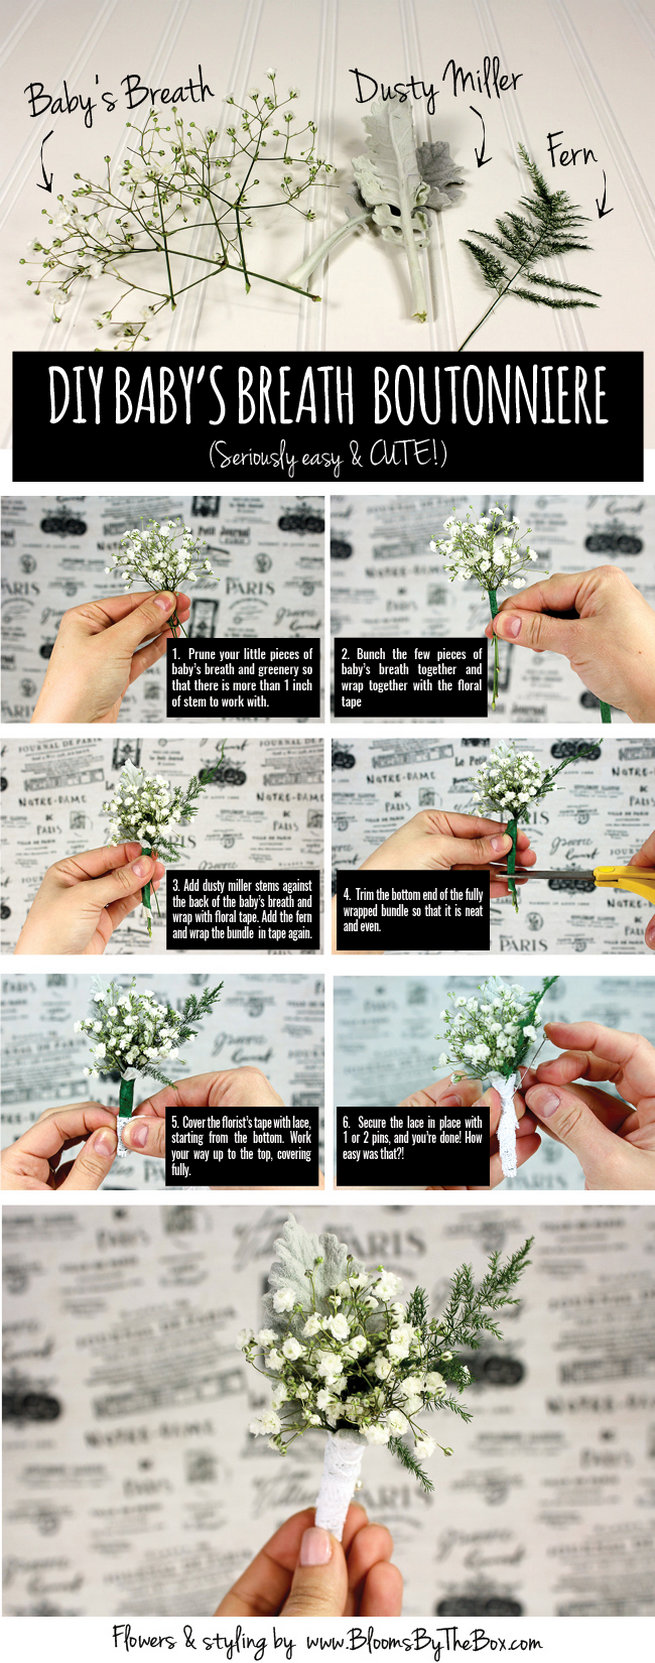 Easy DIY Babys Breath Boutonniere Tutorial